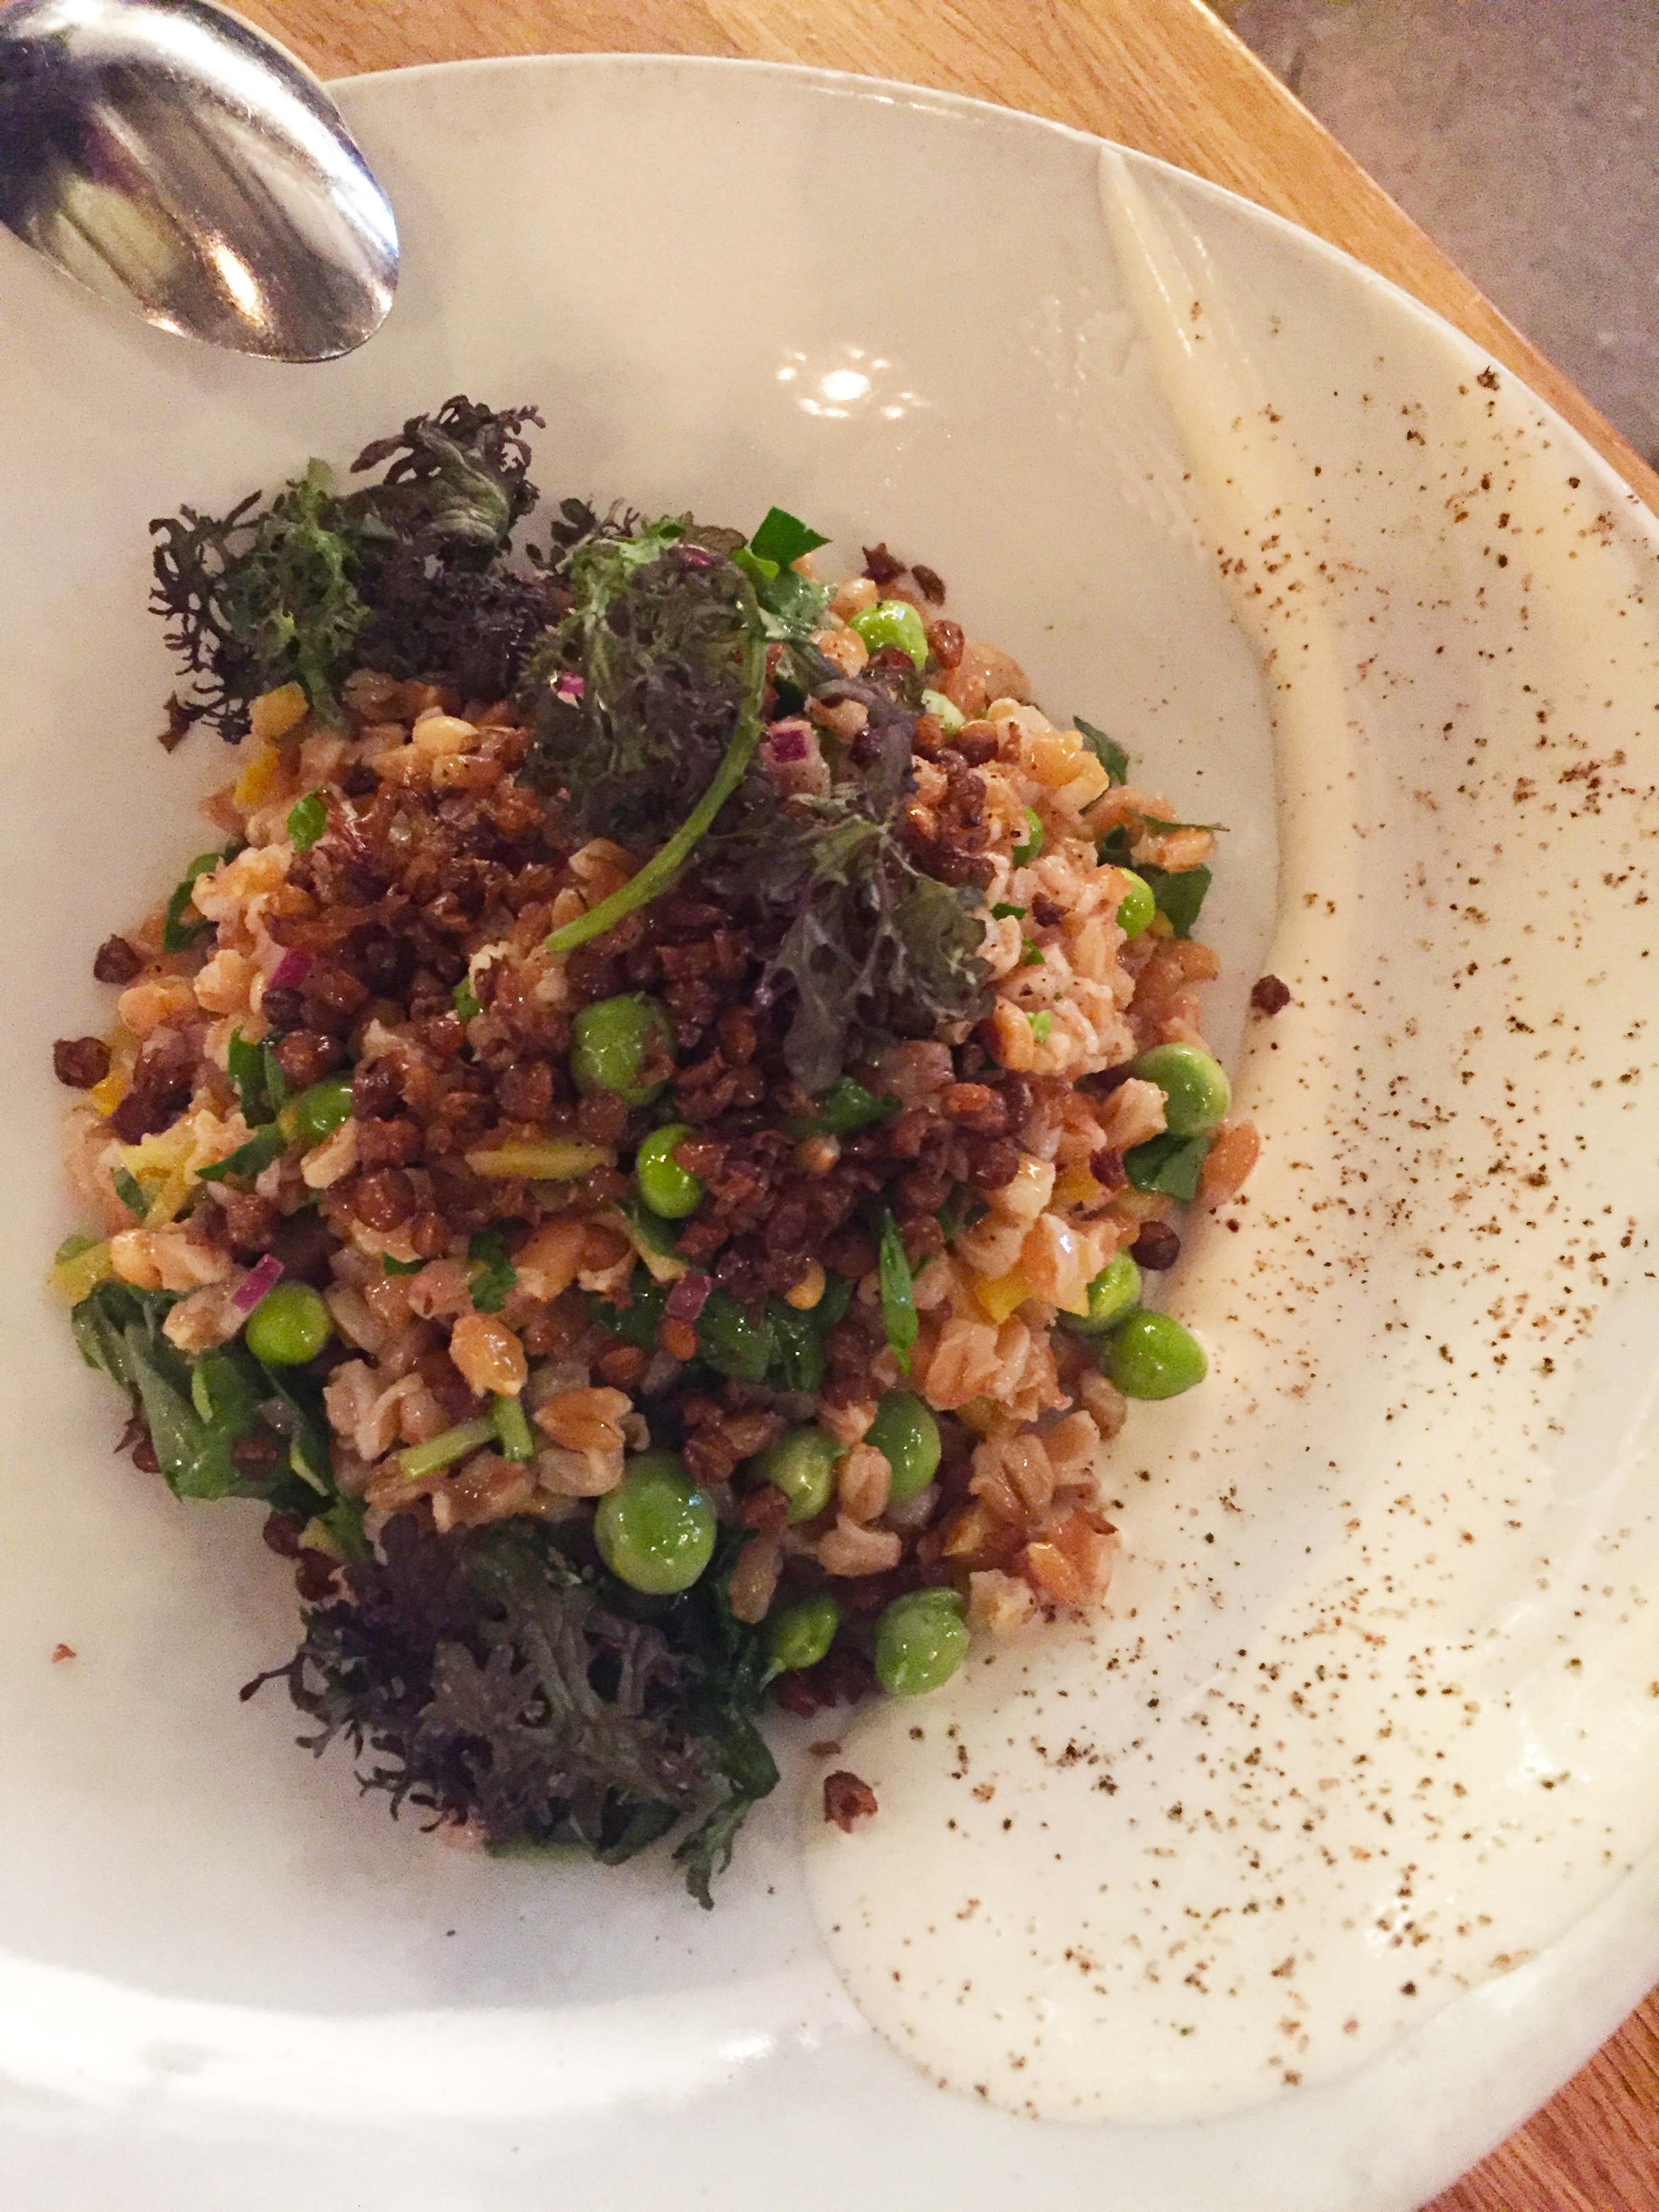 Farro Salad with crème fraîche,English peas,pine nuts,pickled sunchokes,fried lentils, and herbs.